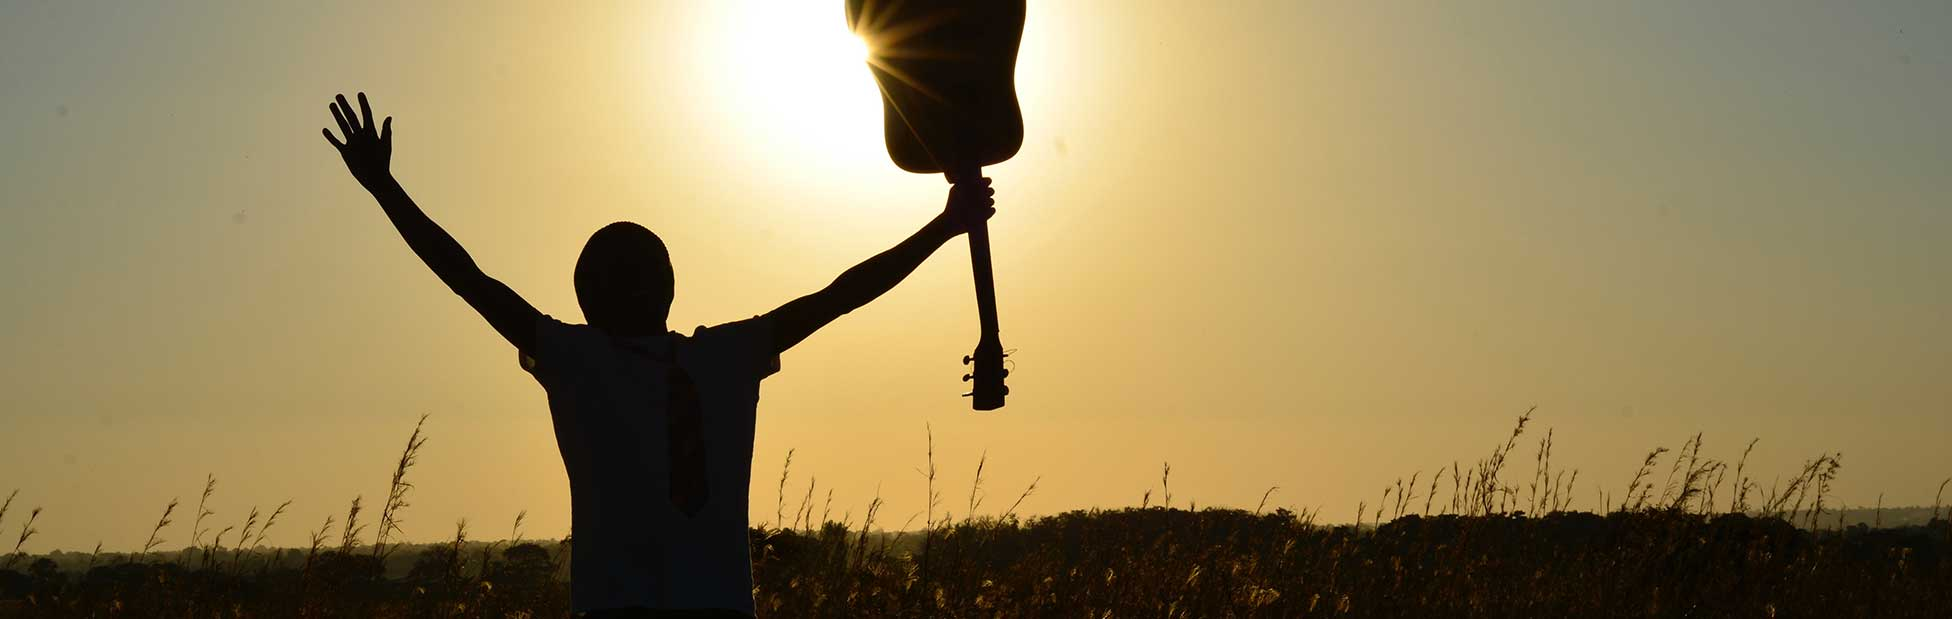 Person holding up guitar against sun in field